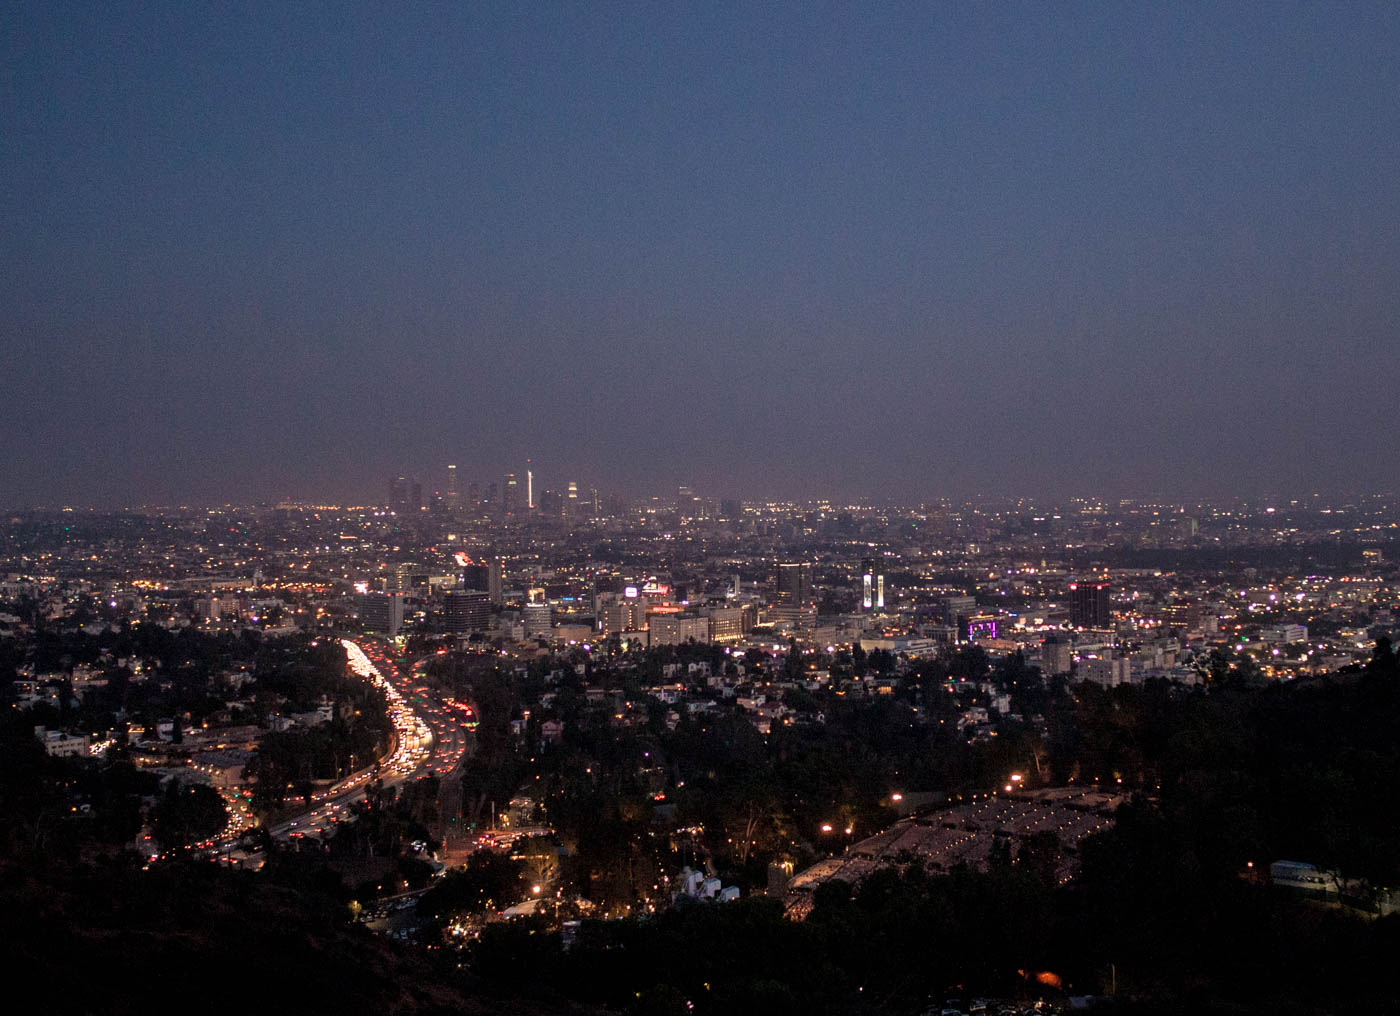 Los Angeles Mulholland Drive